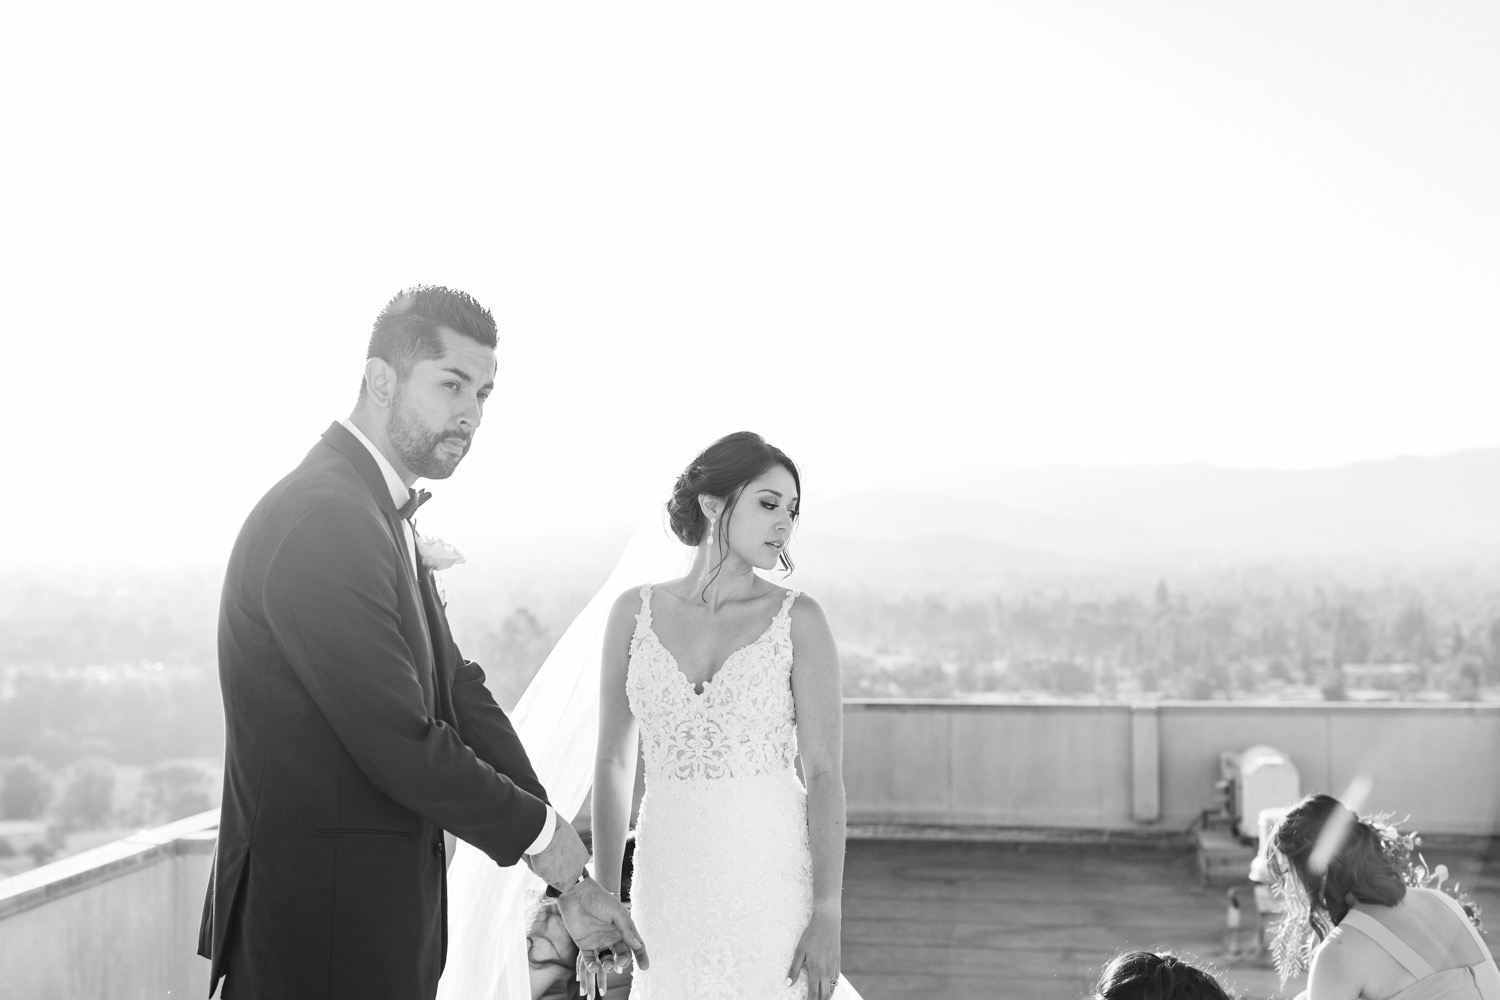 Black and White rooftop wedding photos - https://brittneyhannonphotography.com